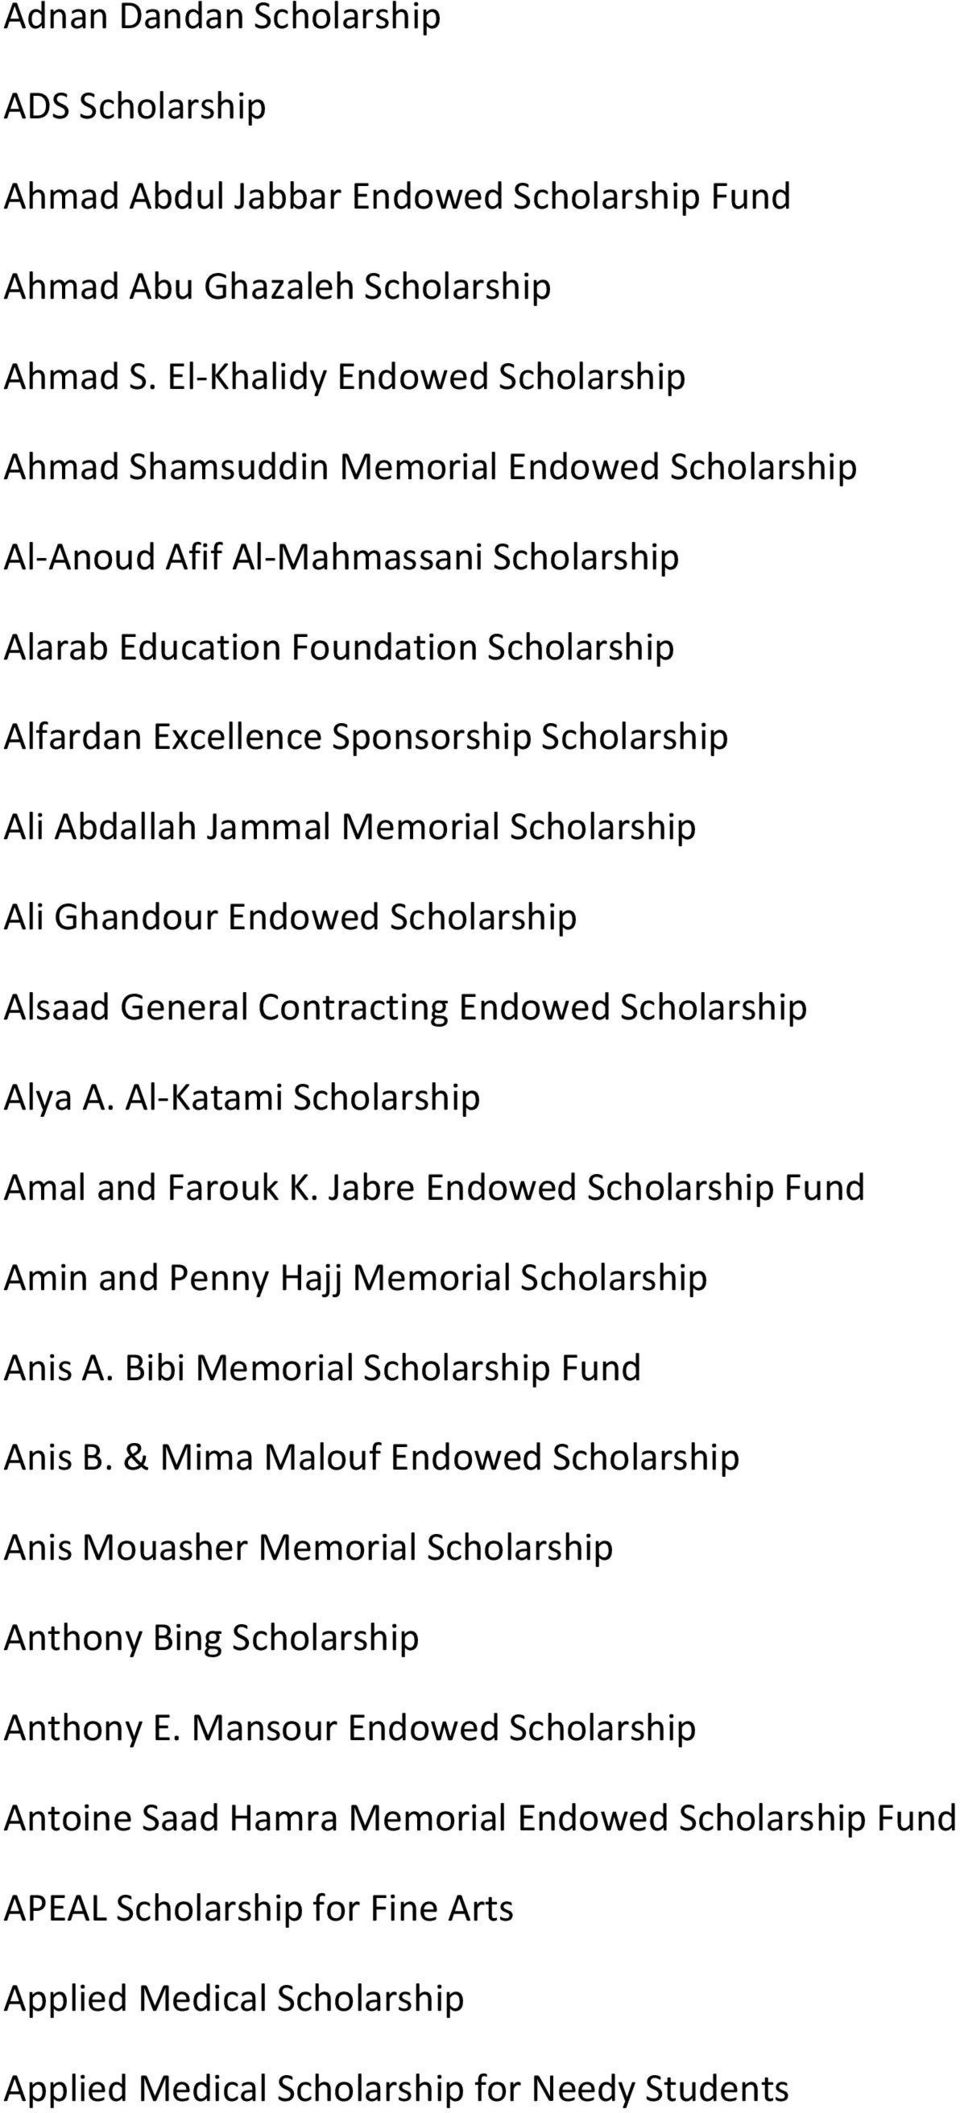 Scholarships and Fellowships - PDF